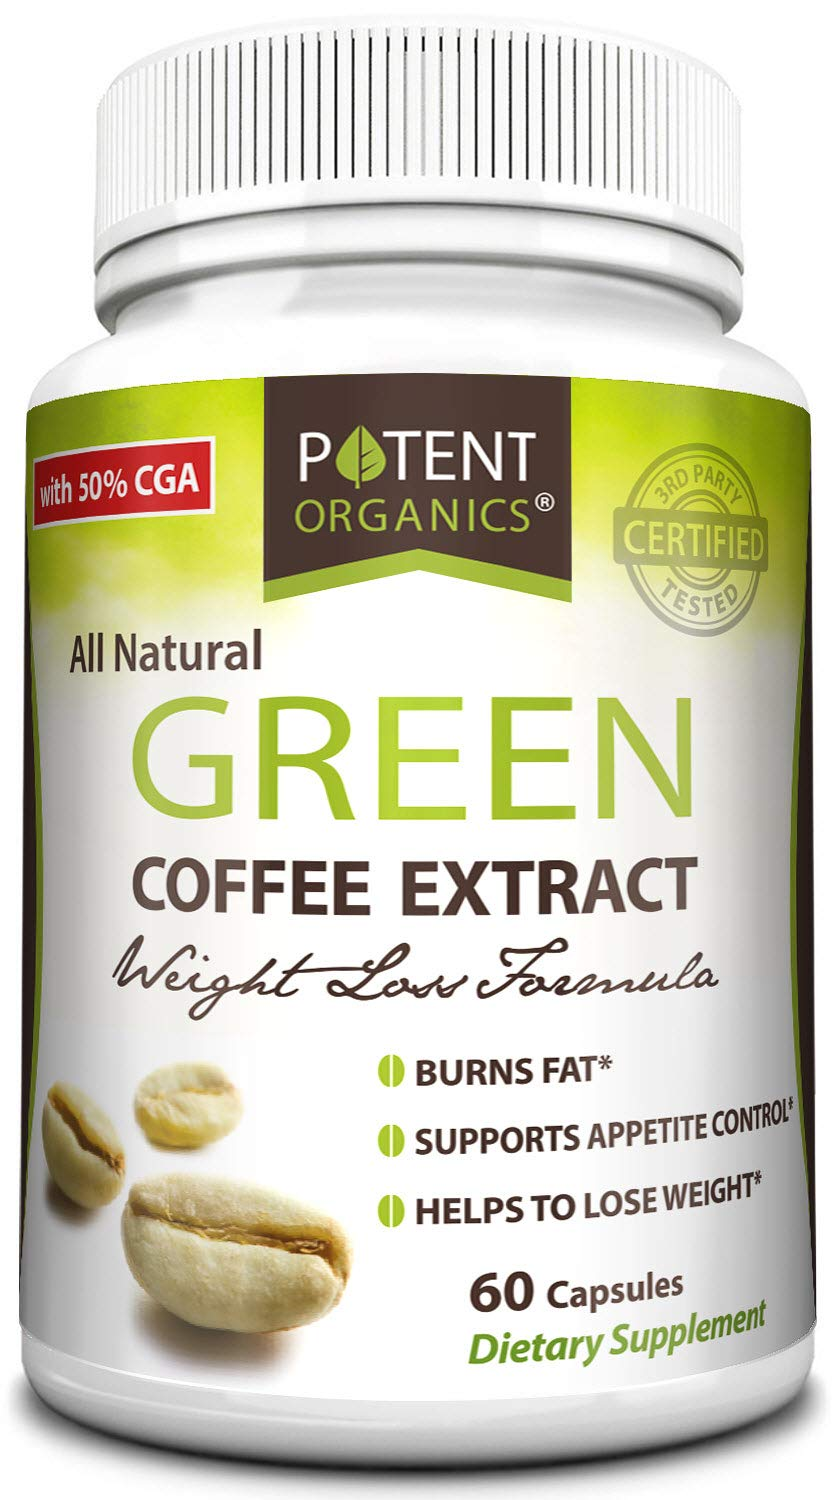 Potent Organics 100% Pure Green Coffee Bean Extract: Standardized to 50% Chlorogenic Acid – Green Coffee Beans – 800mg, 60 Capsules (1 per Serving) – Organic Green Bean Coffee Extract